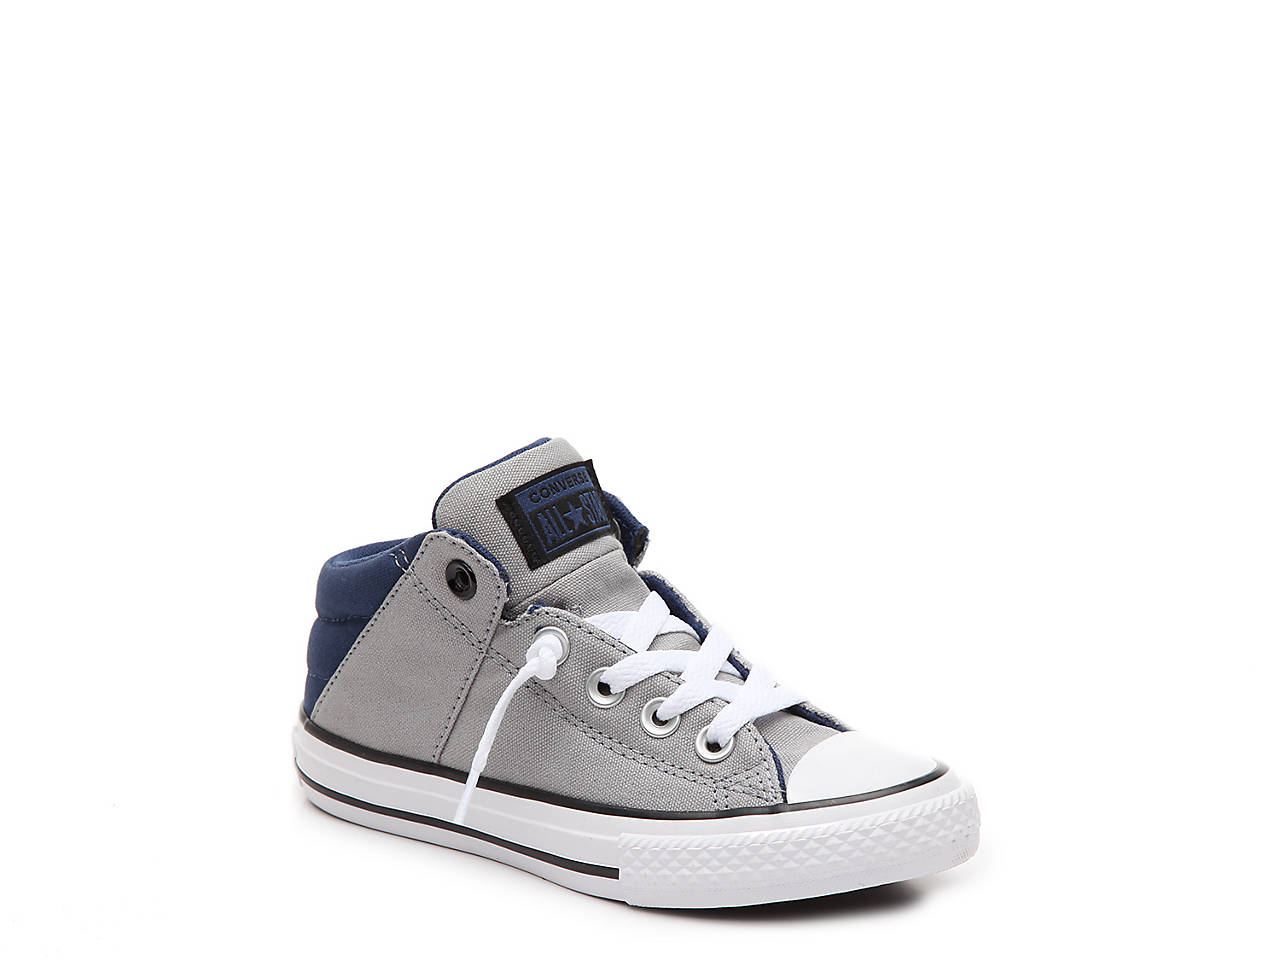 7001bea293a5 Converse Chuck Taylor All Star Axel Toddler   Youth Mid-Top Slip-On ...